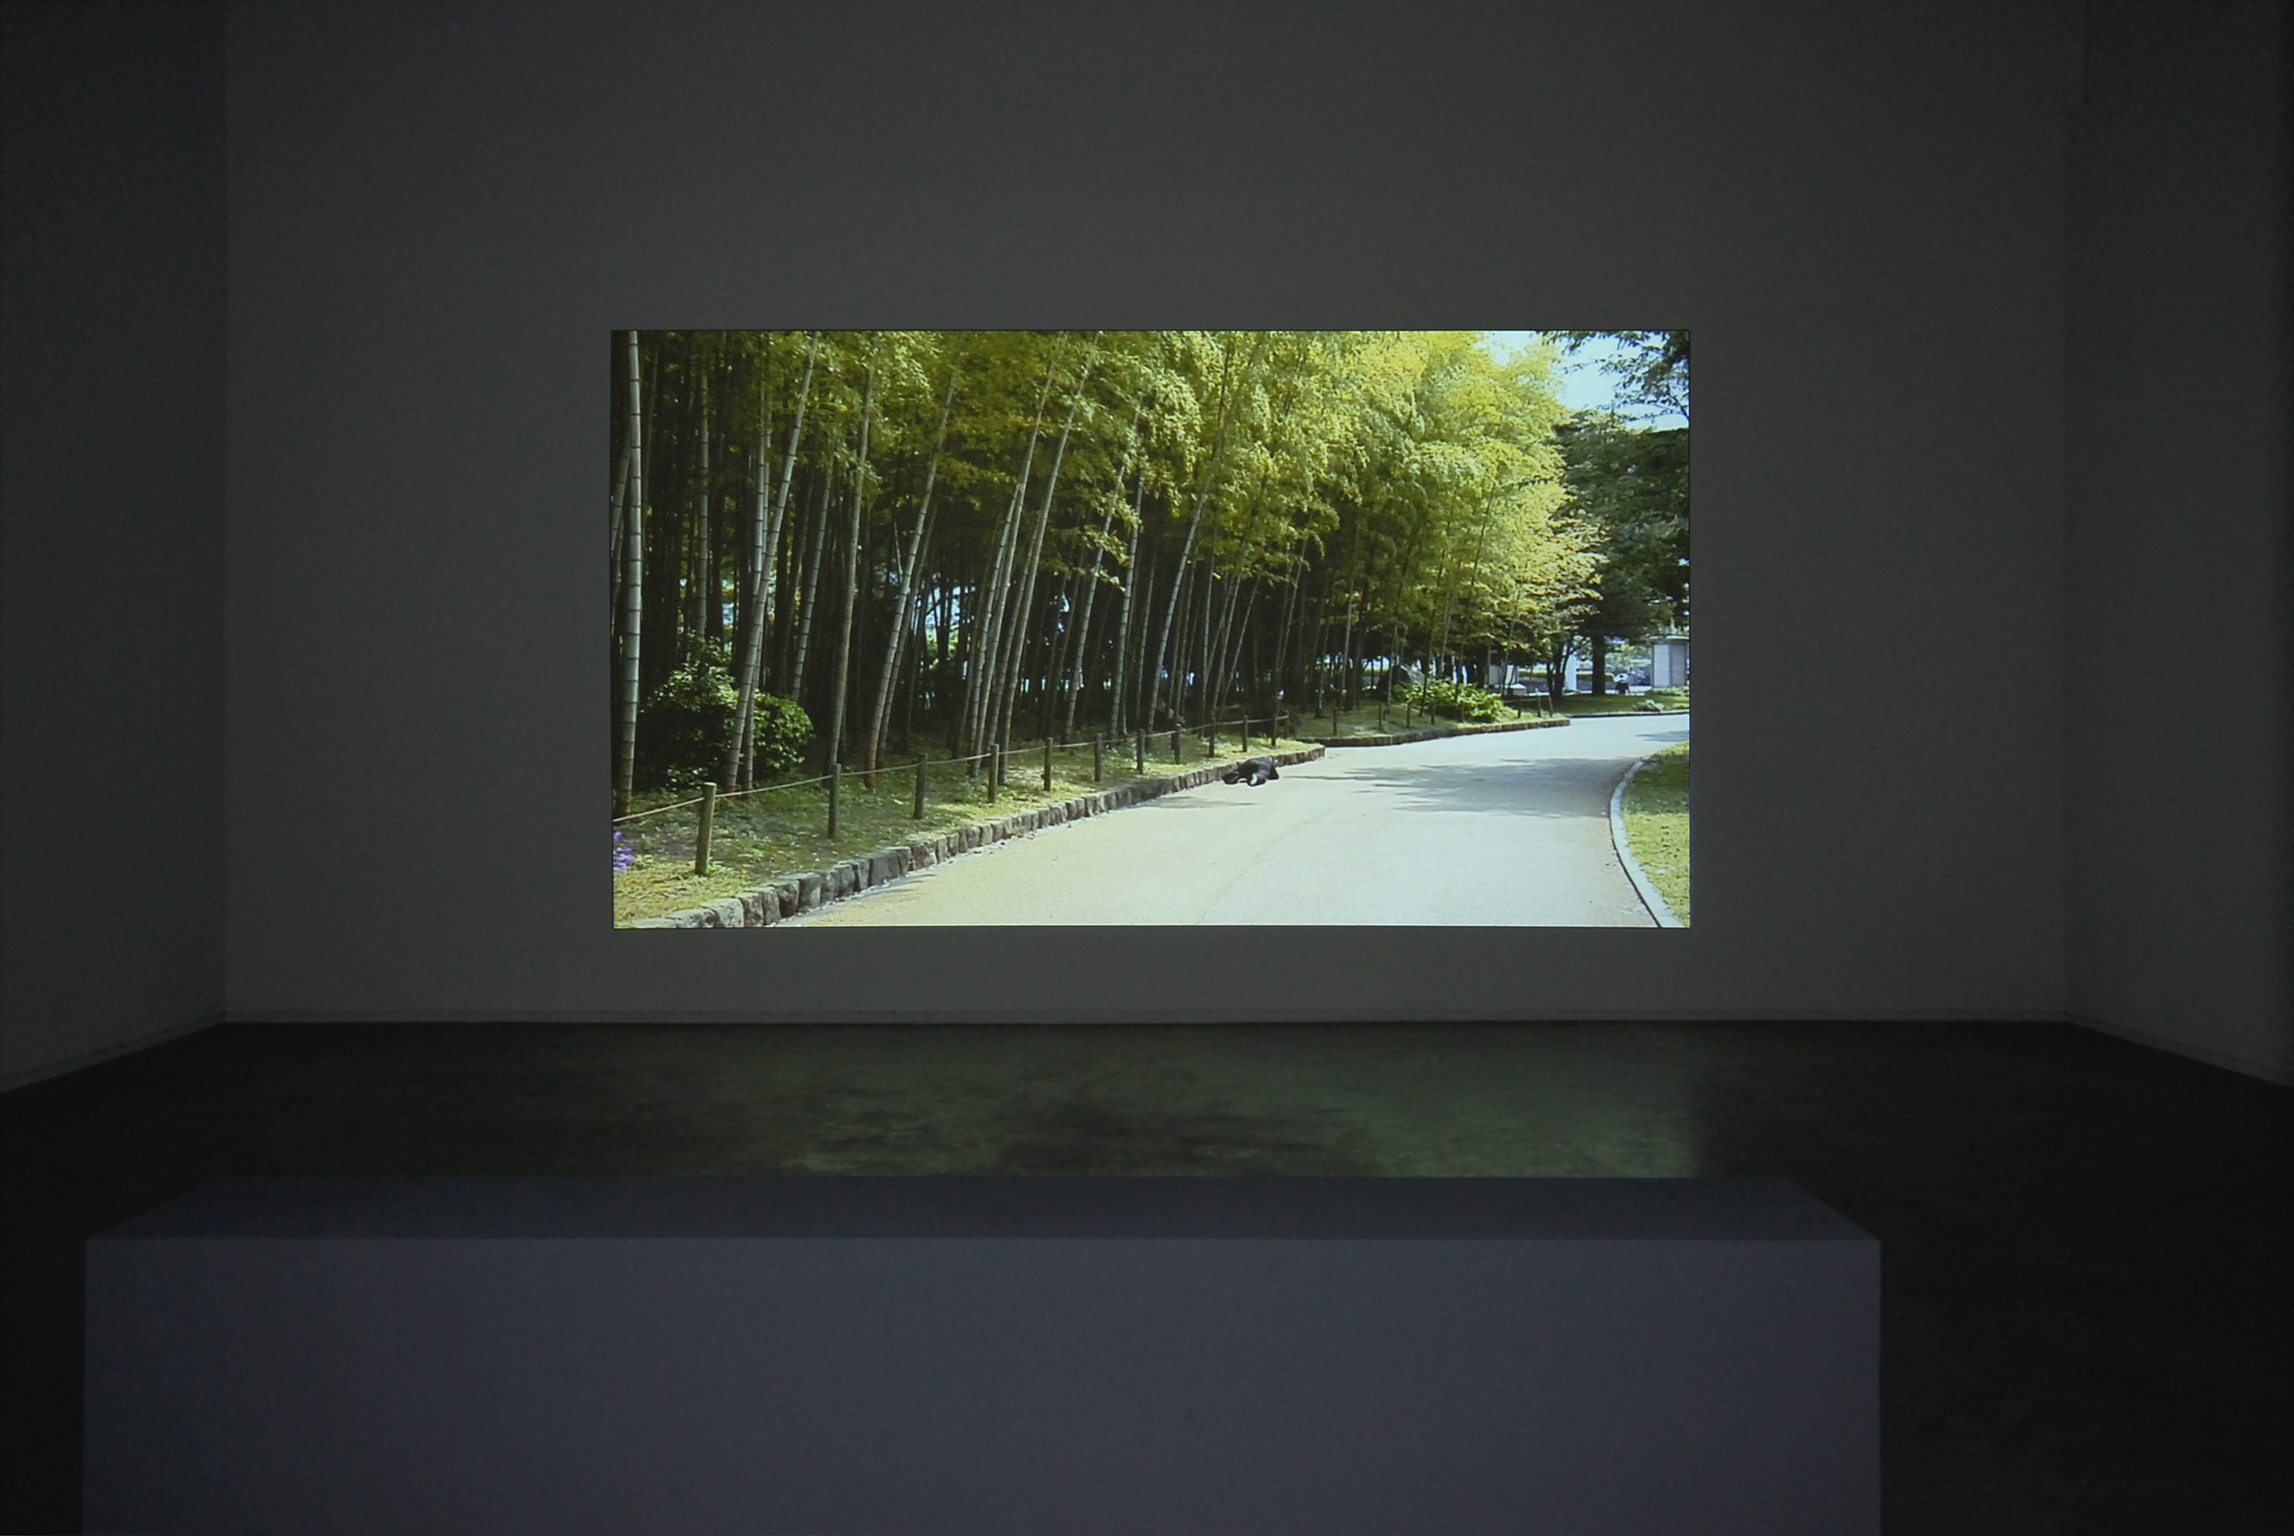 Jin-me Yoon, As It Is Becoming (Beppu, Japan): Park, Former U.S. Army Base, 2008, single channel HD video projection, 14 minutes, 23 seconds by